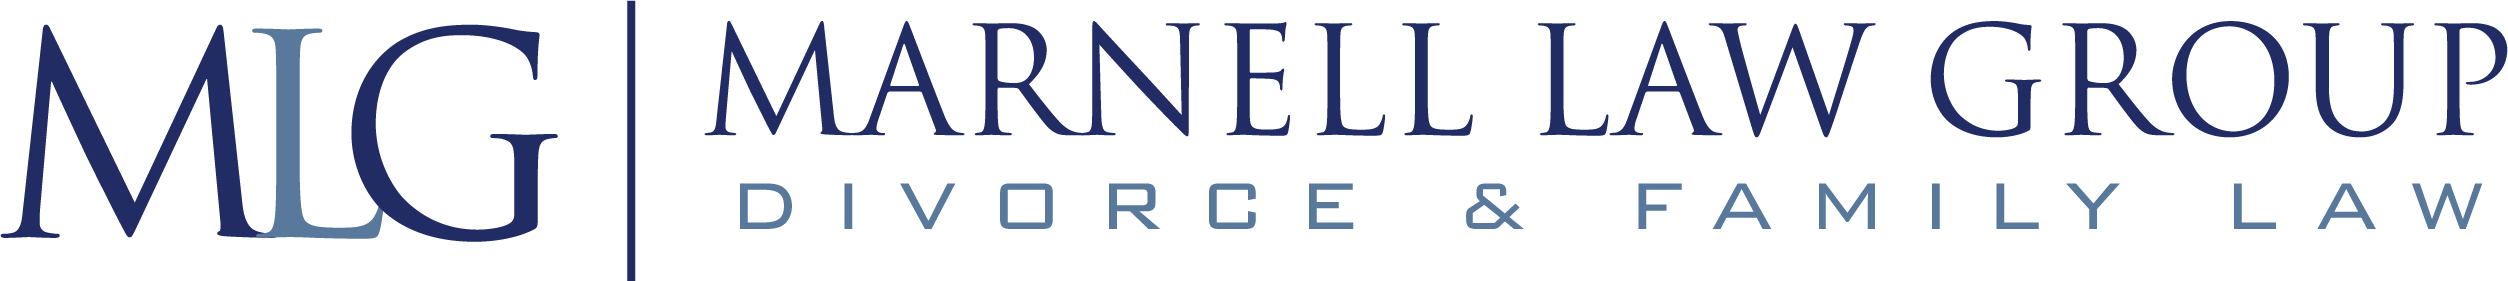 Marnell Law Group - Divorce & Family Law